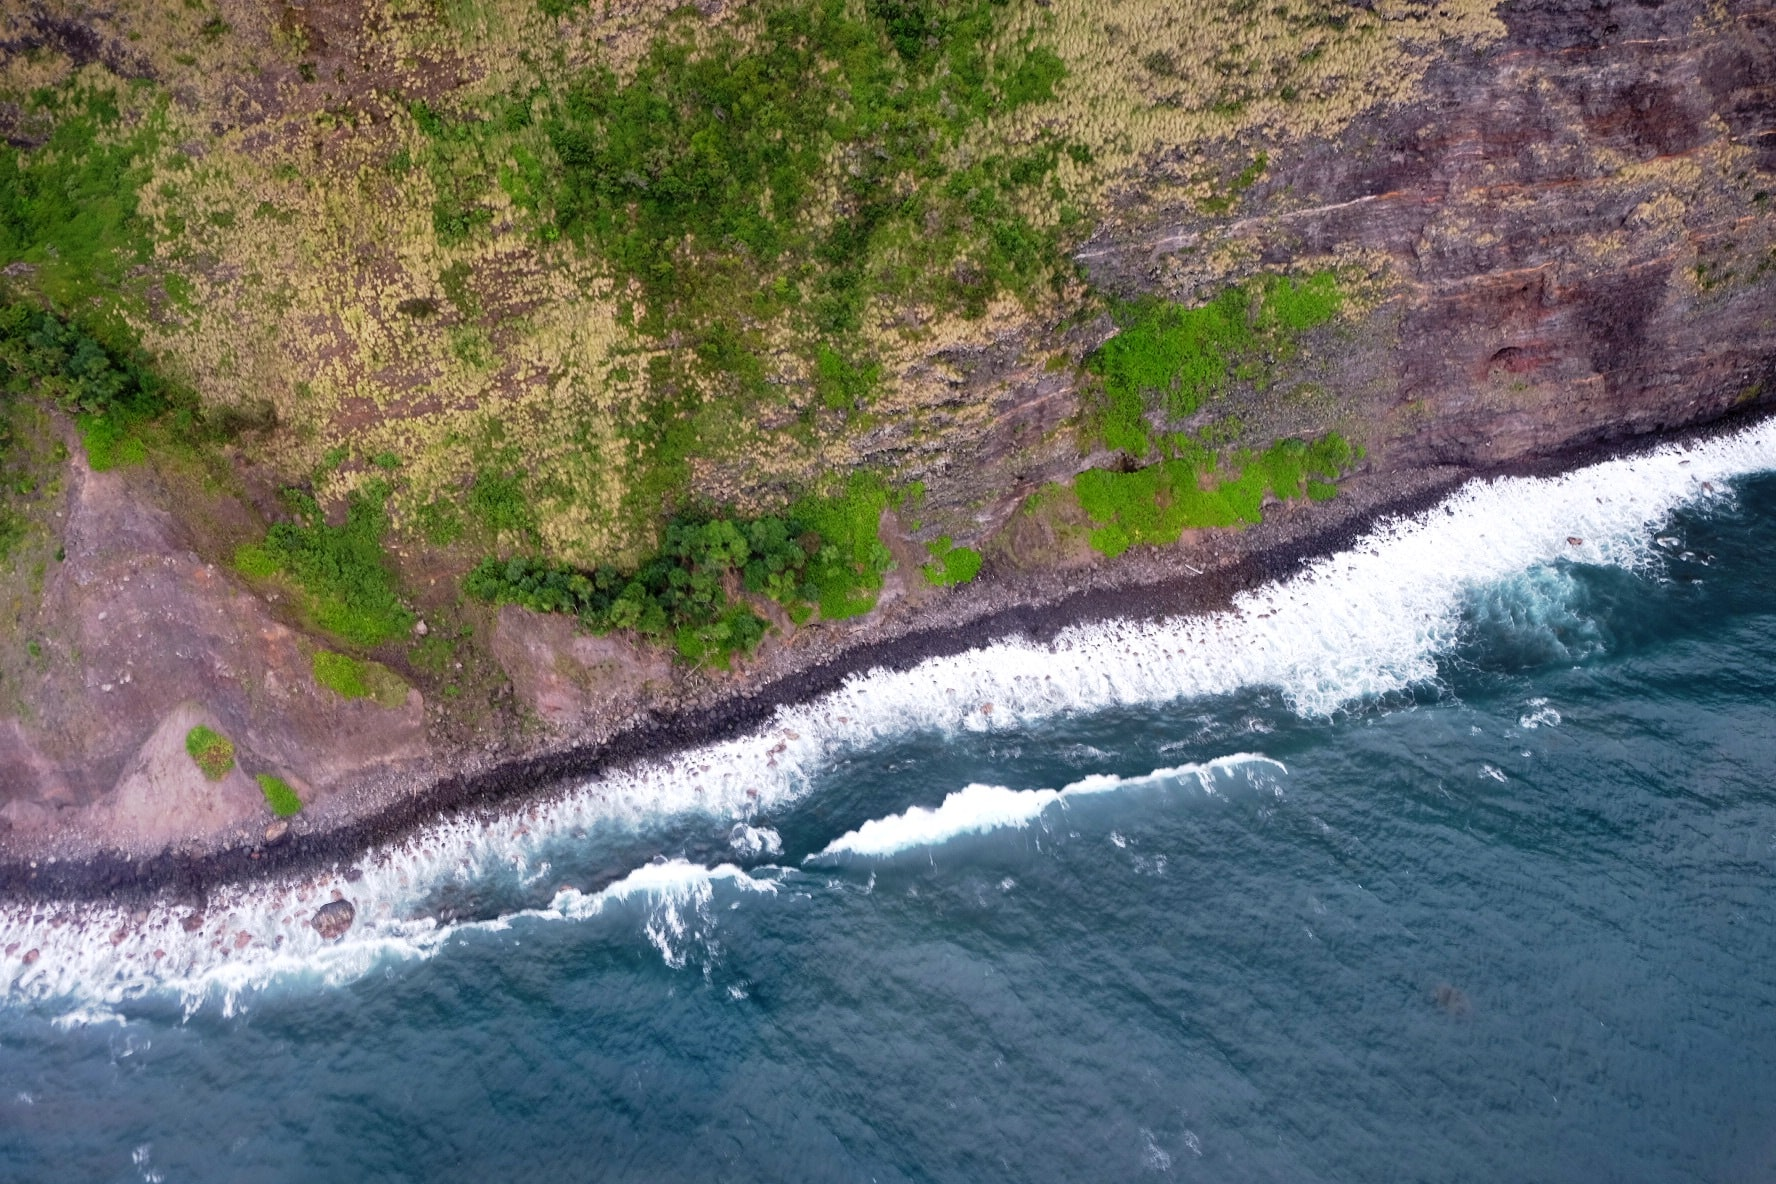 A drone view of a coastal landscape of trees and water